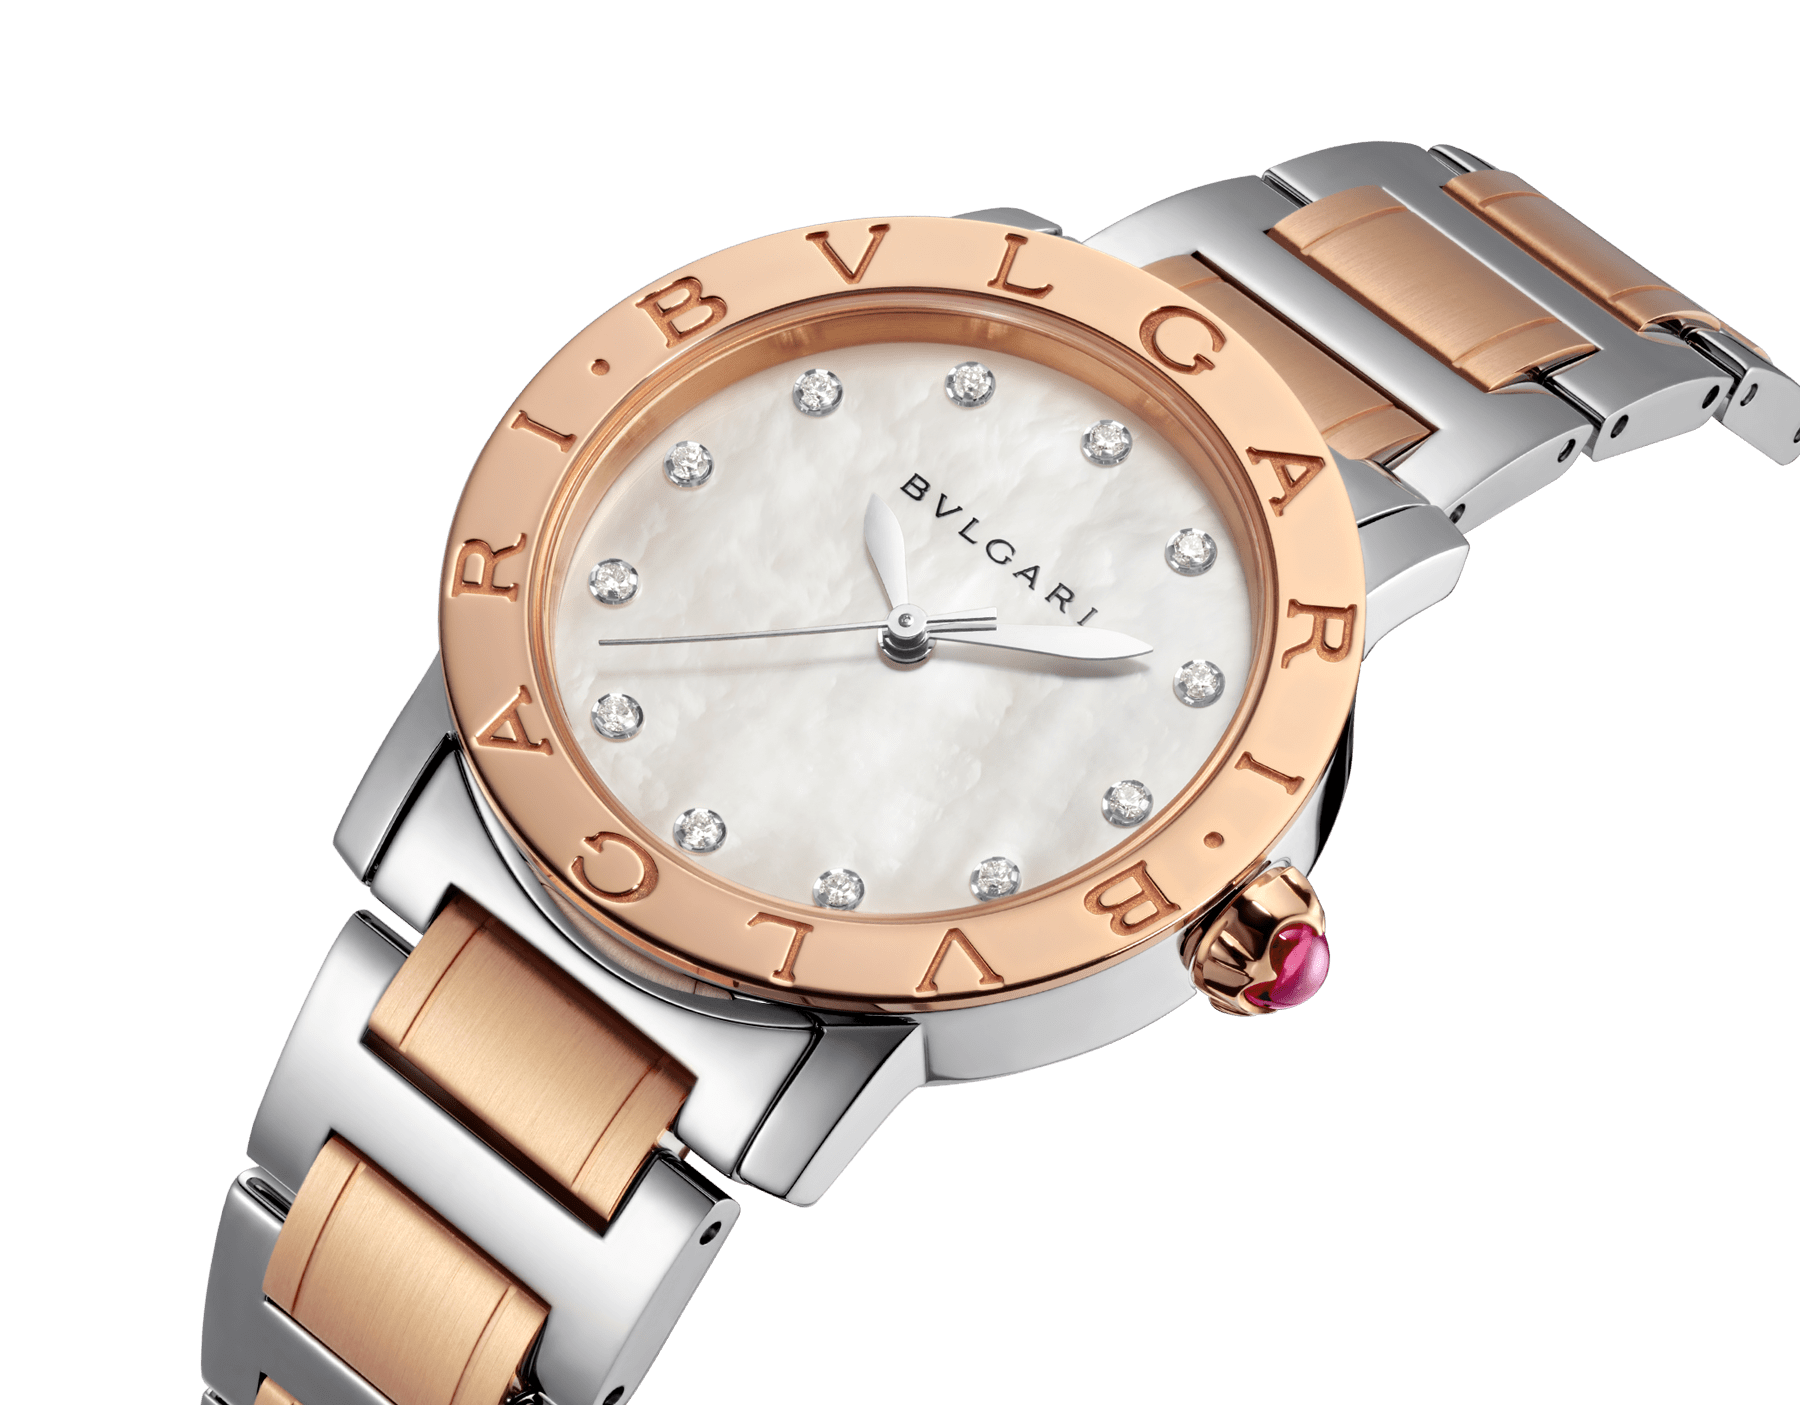 BVLGARI BVLGARI watch in 18 kt rose gold and stainless steel case and bracelet, with white mother-of-pearl dial and diamond indexes. Medium model 101891 image 2